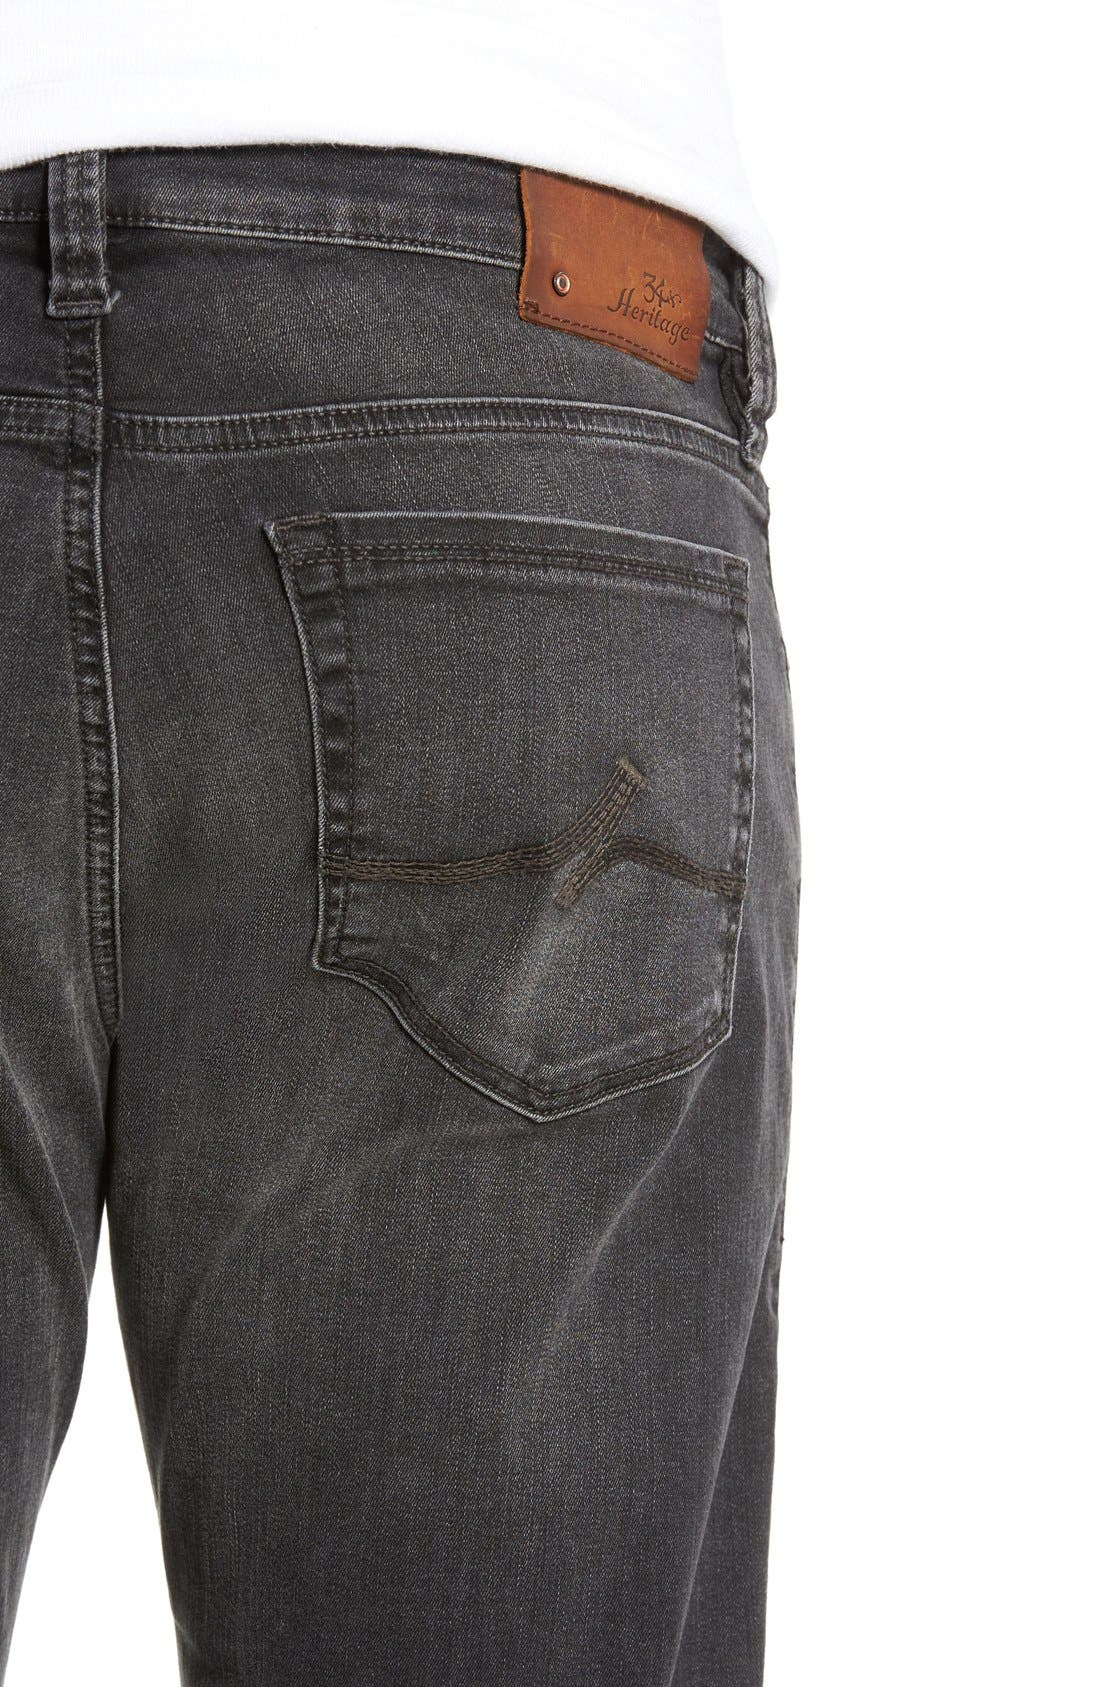 'Courage' Straight Leg Jeans,                             Alternate thumbnail 4, color,                             COURAGE COAL SOFT